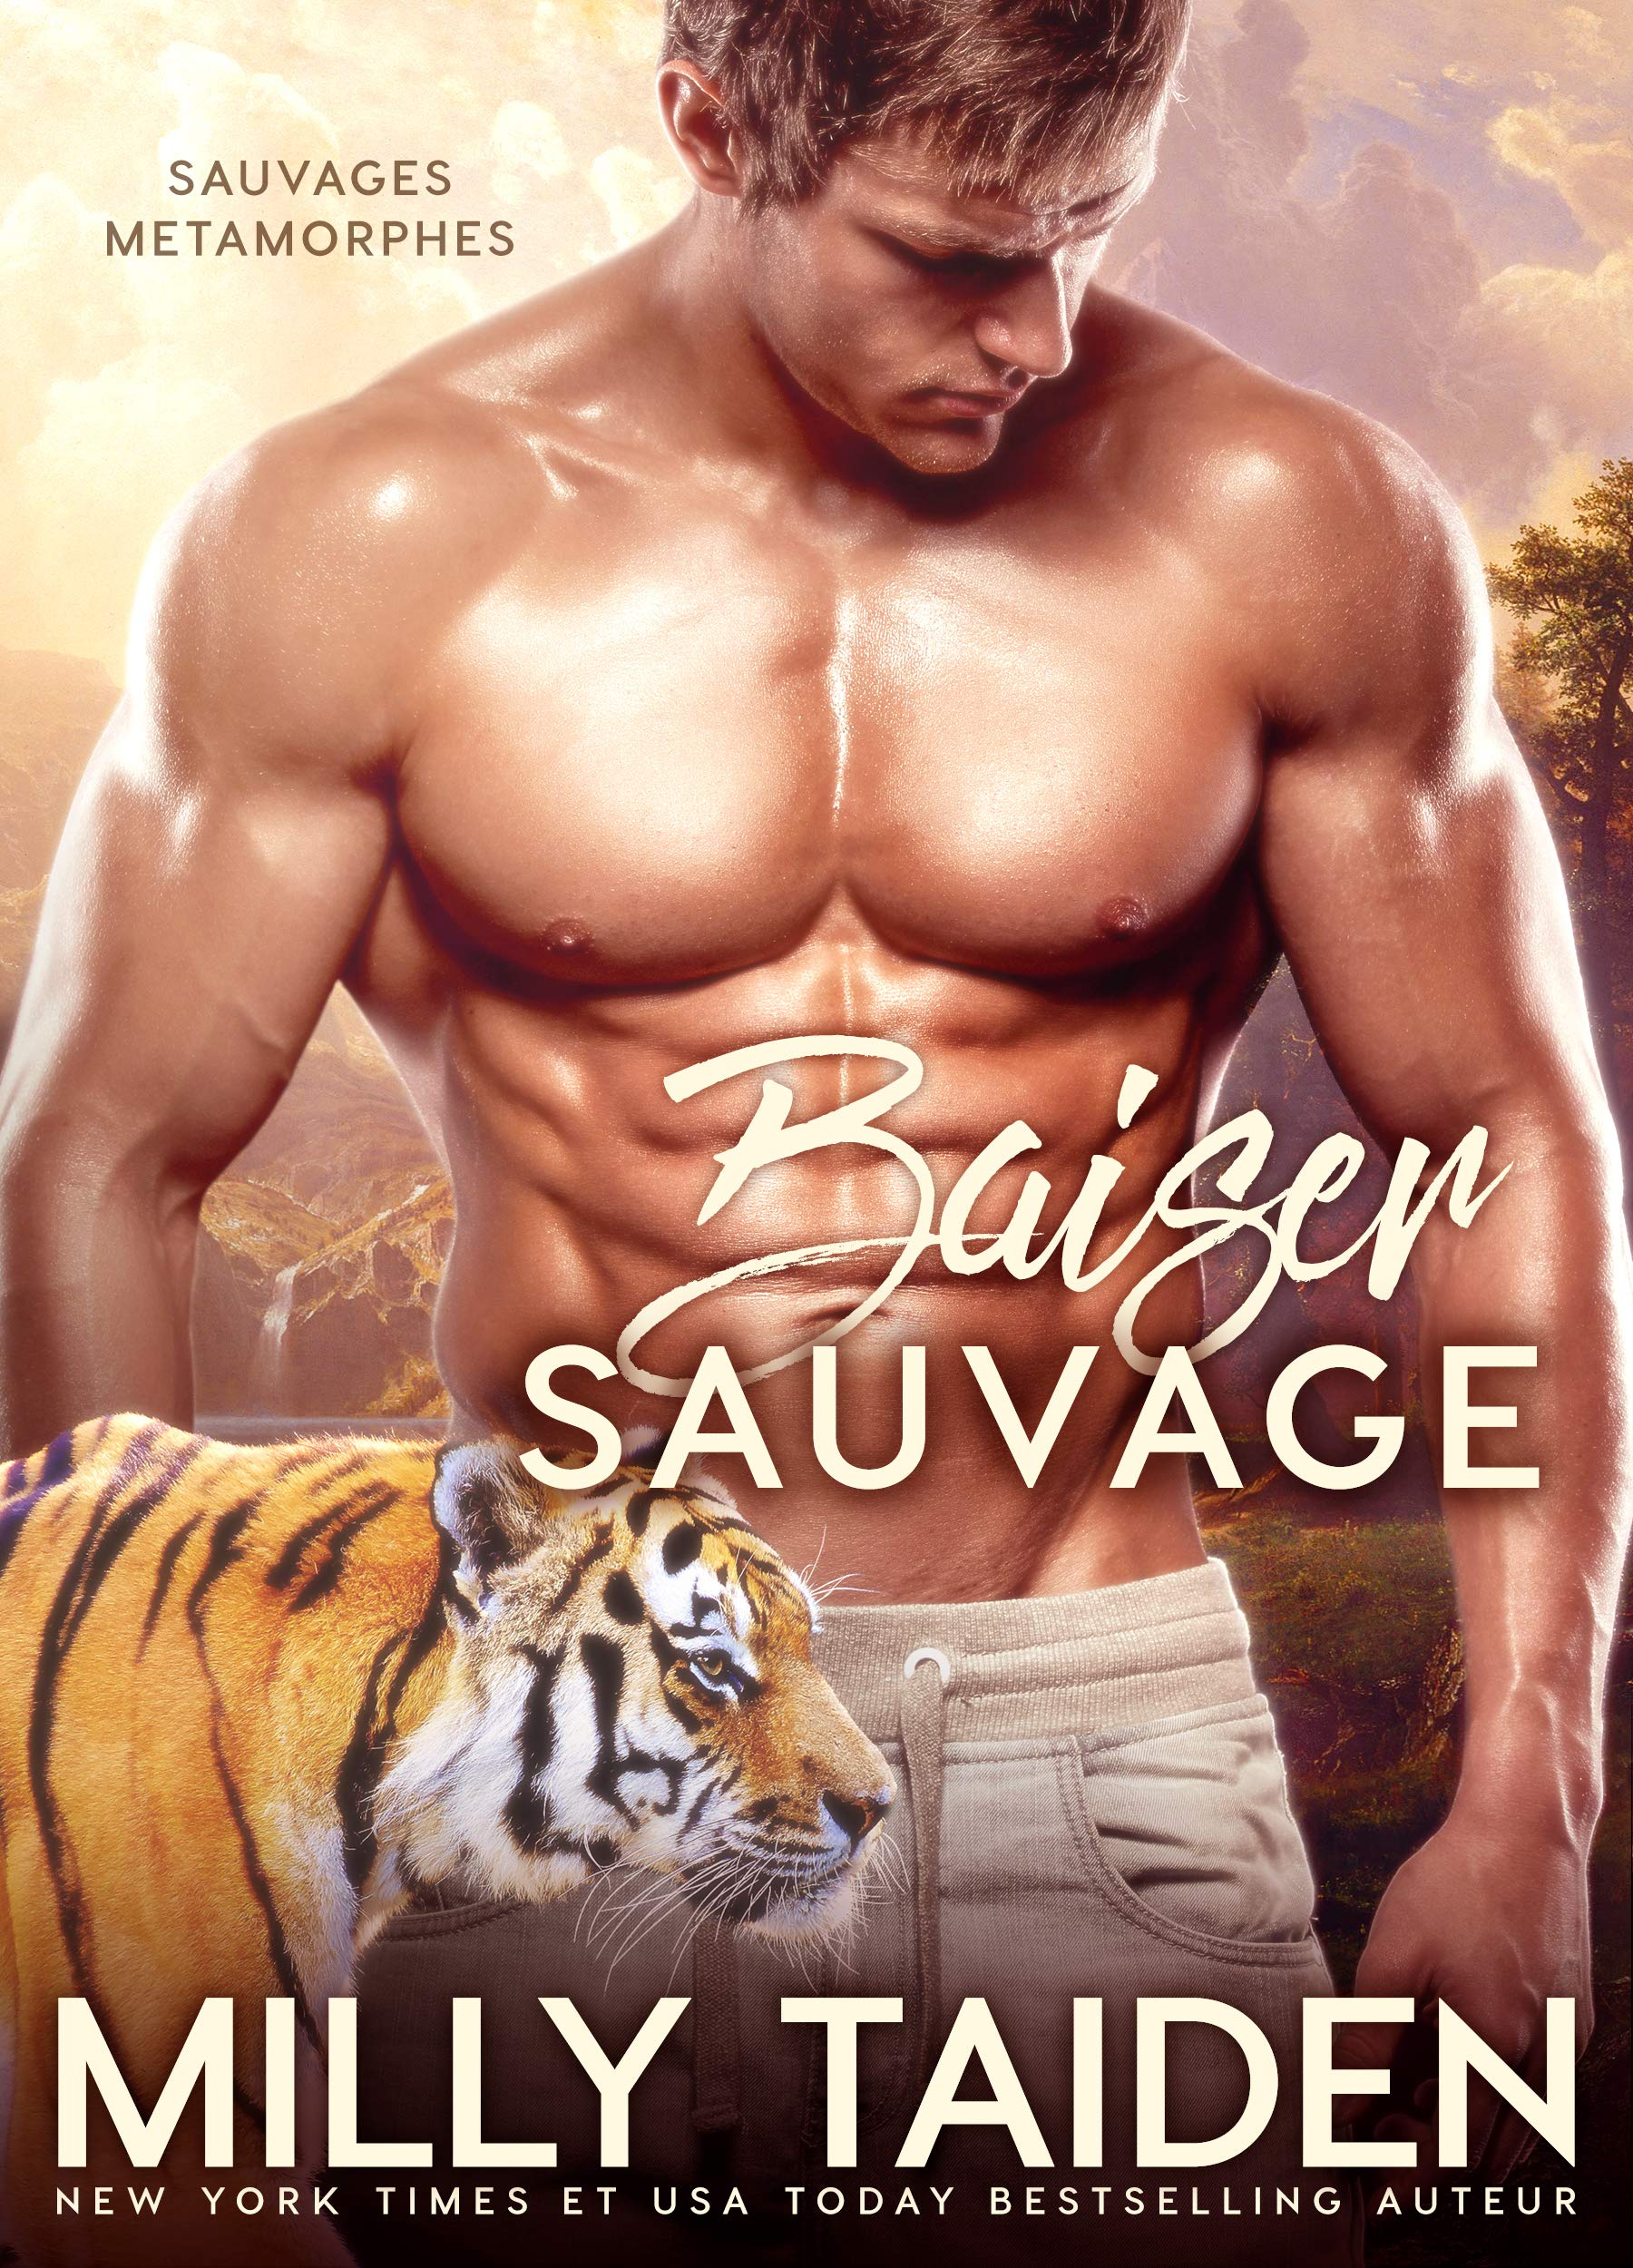 Baiser Sauvage: Romance Paranormale (Sauvages Metamorphes t. 2) por Milly Taiden